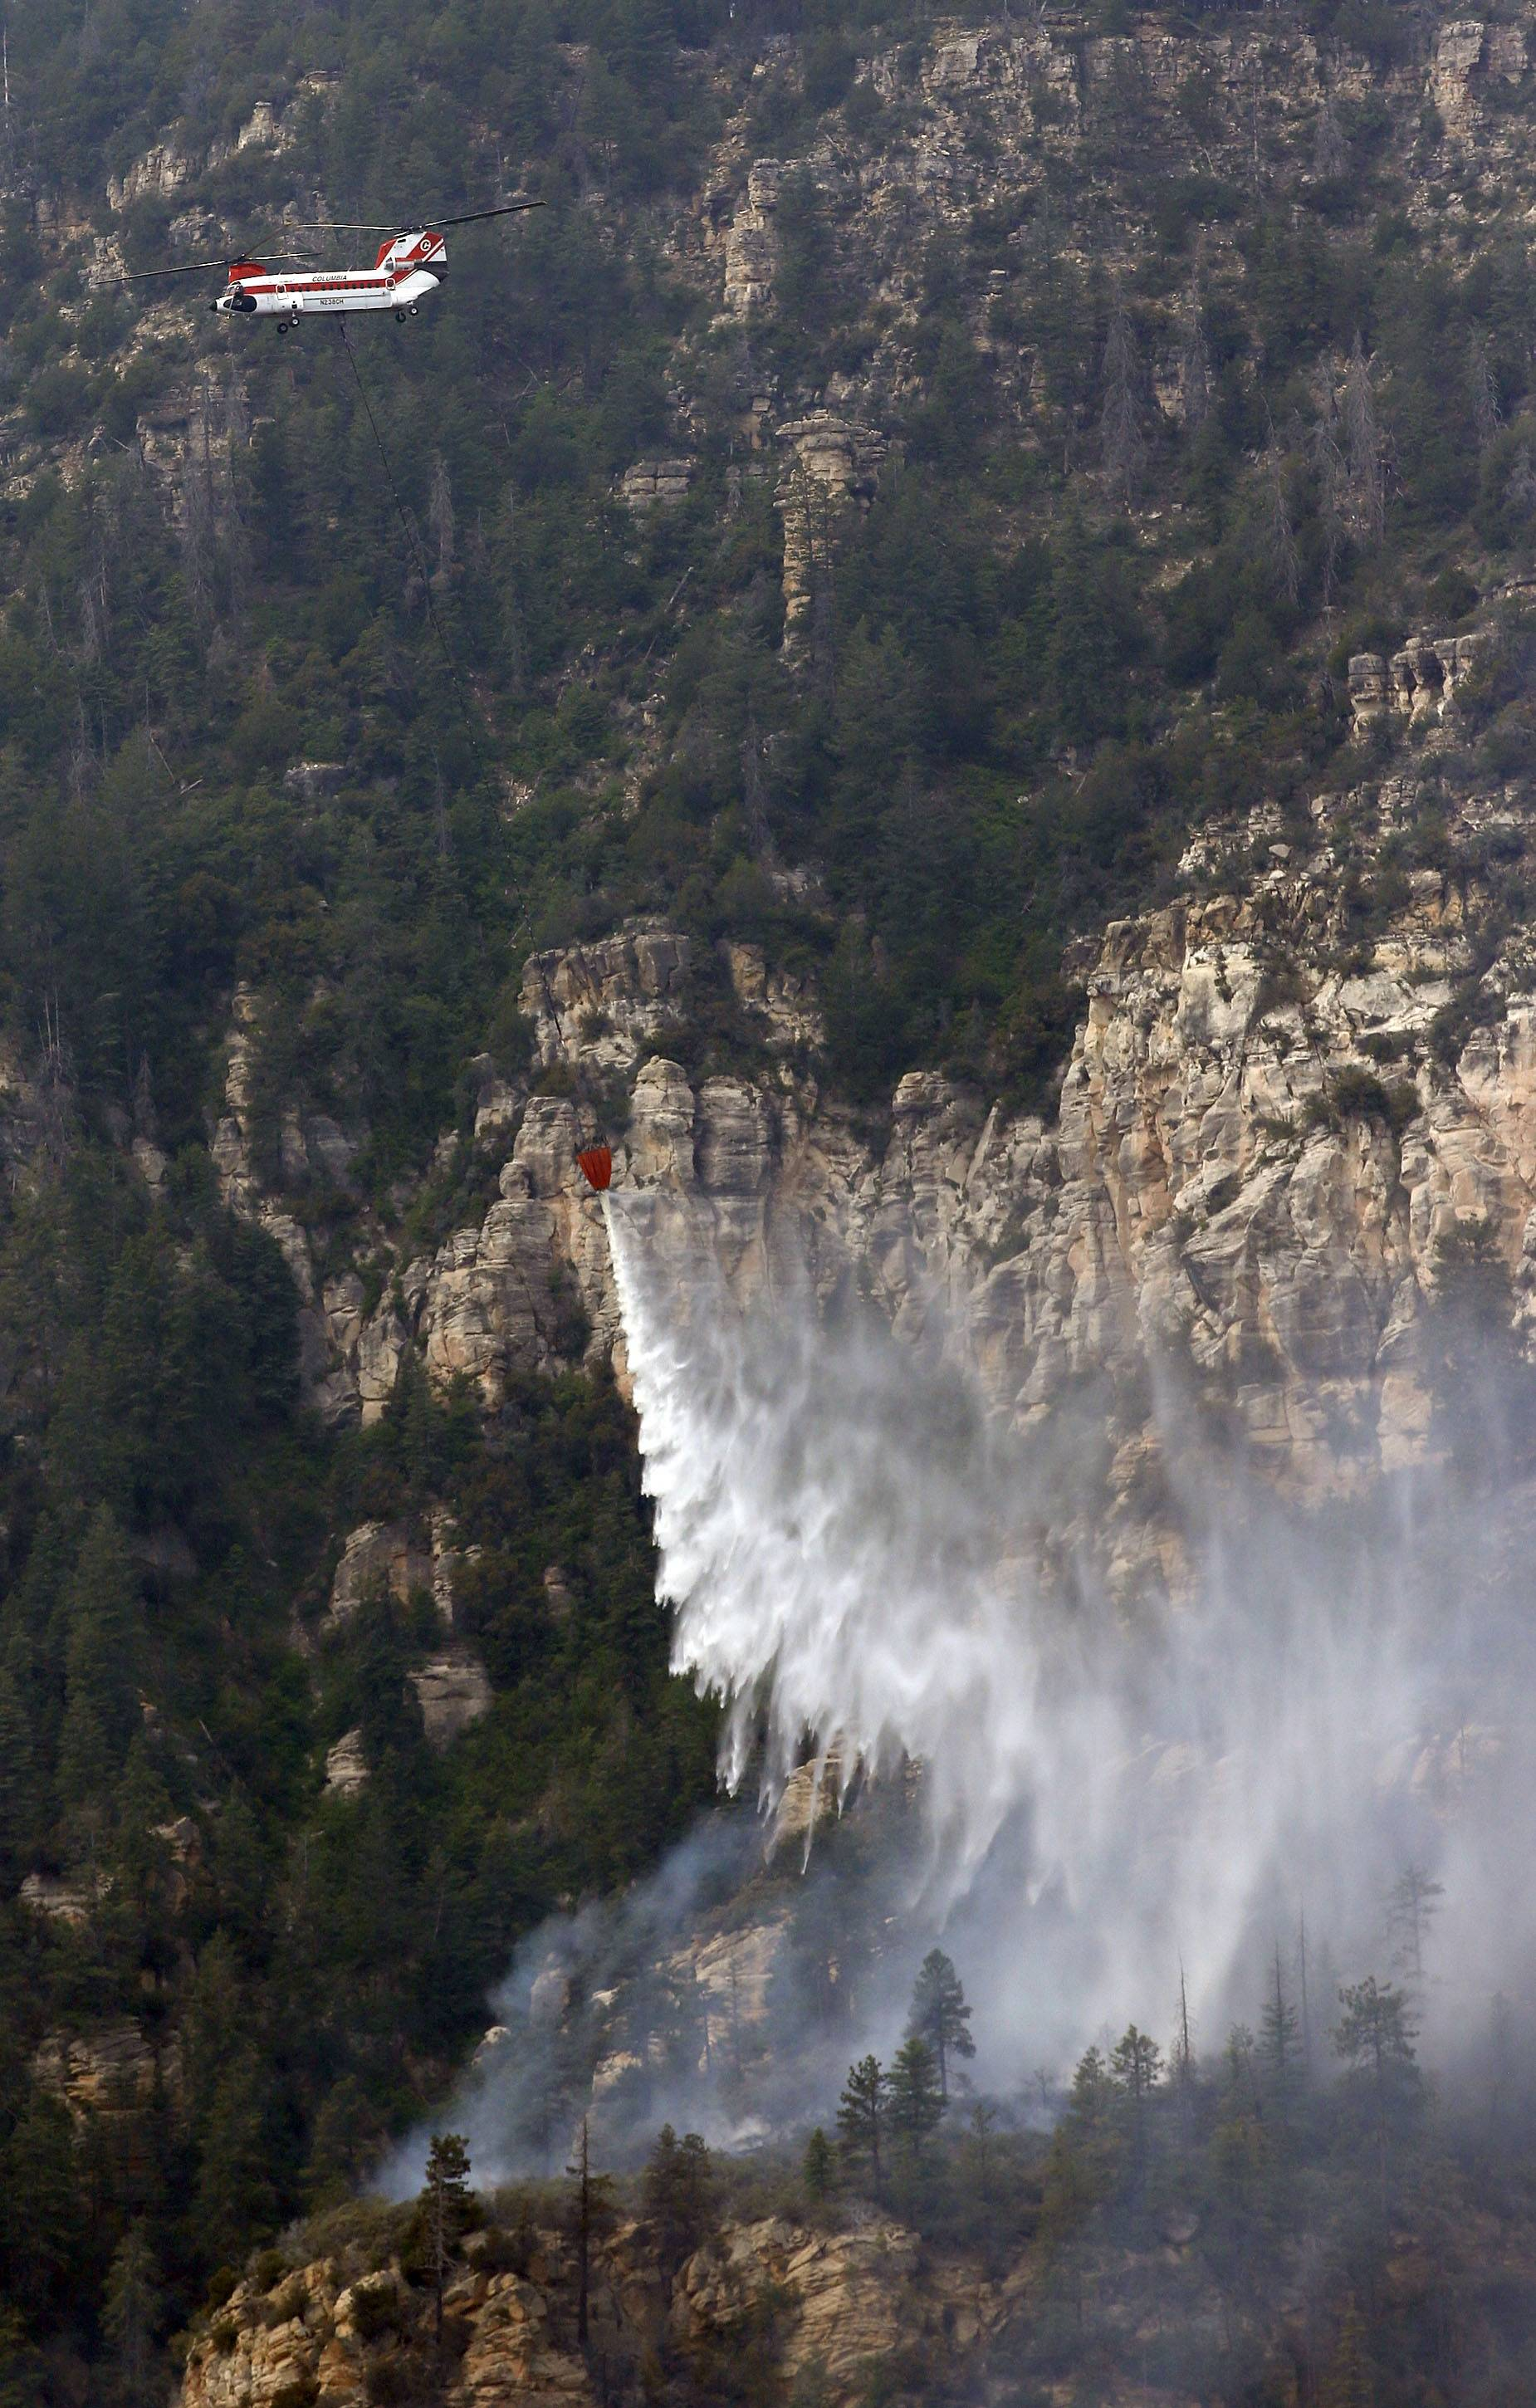 A Heavy Type-1 Vertol Helictoper dumps 2,800 gallons of water onto the Slide Fire as it burns up Oak Creek Canyon on Friday, May 23, near Flagstaff, Ariz. The fire has burned approximately 7,500 acres and is five percent contained.